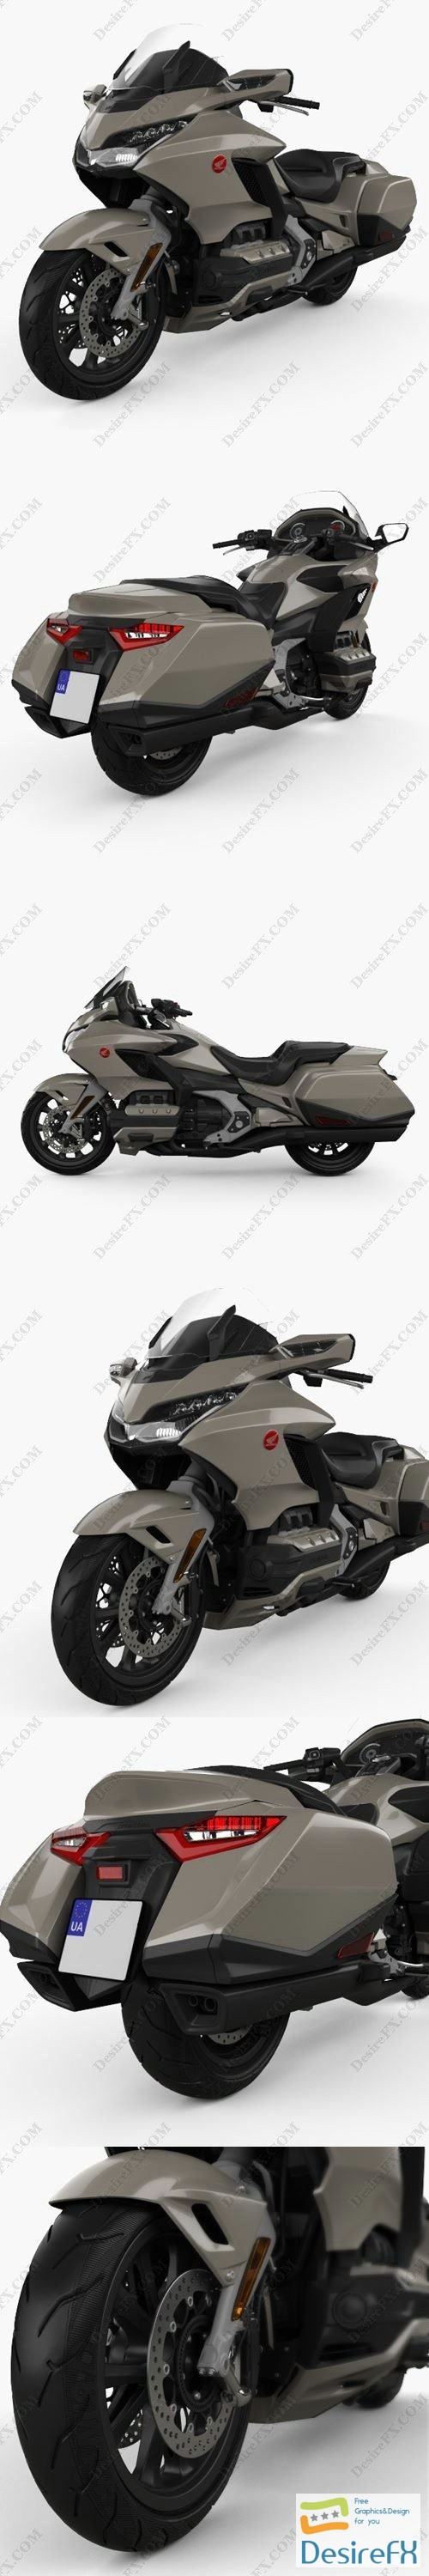 3d-models - Honda GL 1800 Gold Wing 2018 3D Model